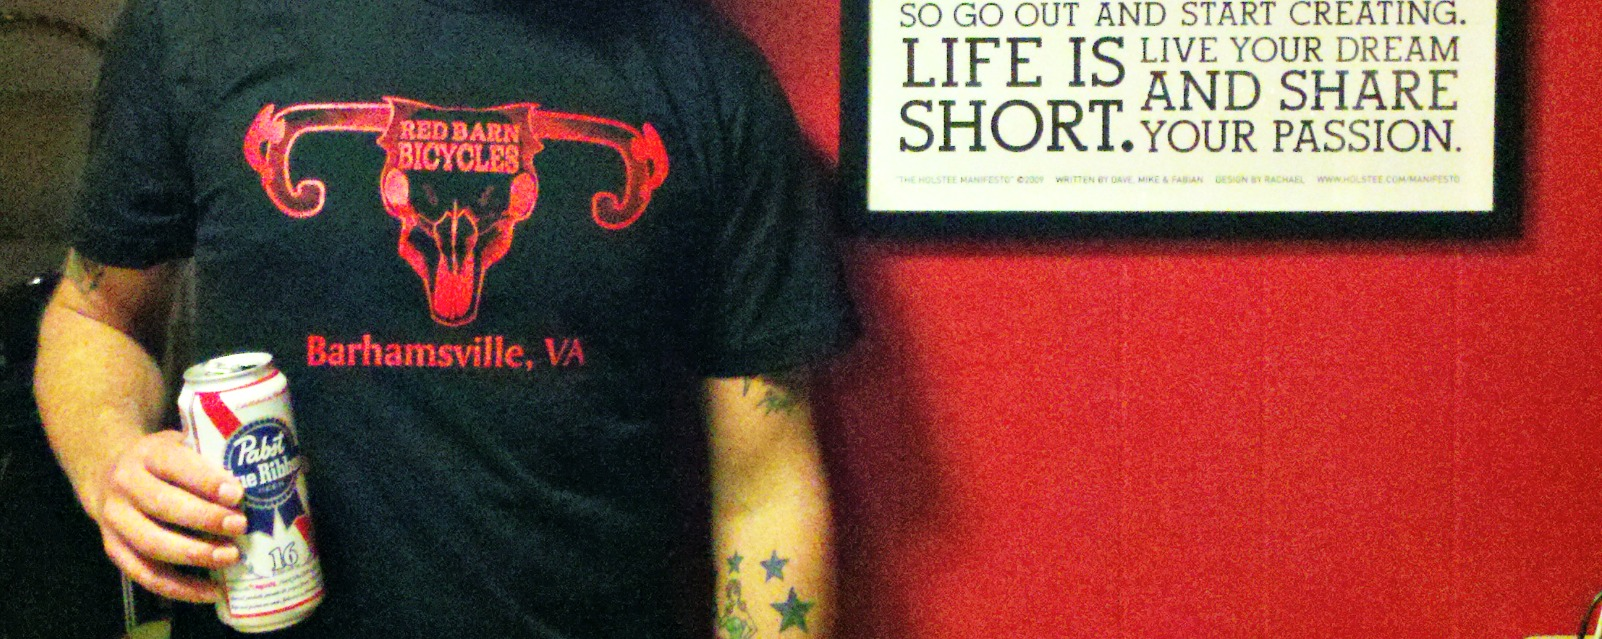 Red Barn Bicycles T shirts